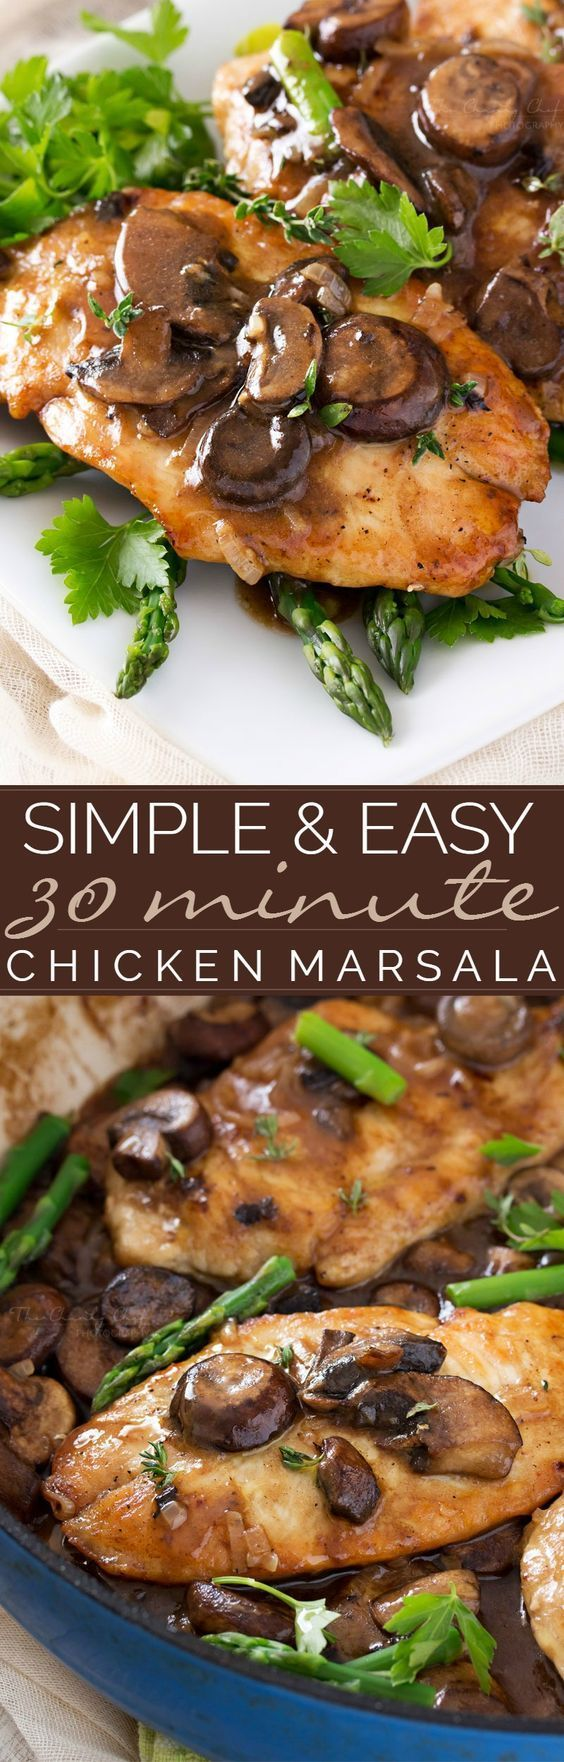 Easy Chicken Marsala | This easy chicken Marsala dish takes just 30 minutes to make! Classically savory and flavorful, this is one dish you'll love to cook time and time again! | thechunkychef.com